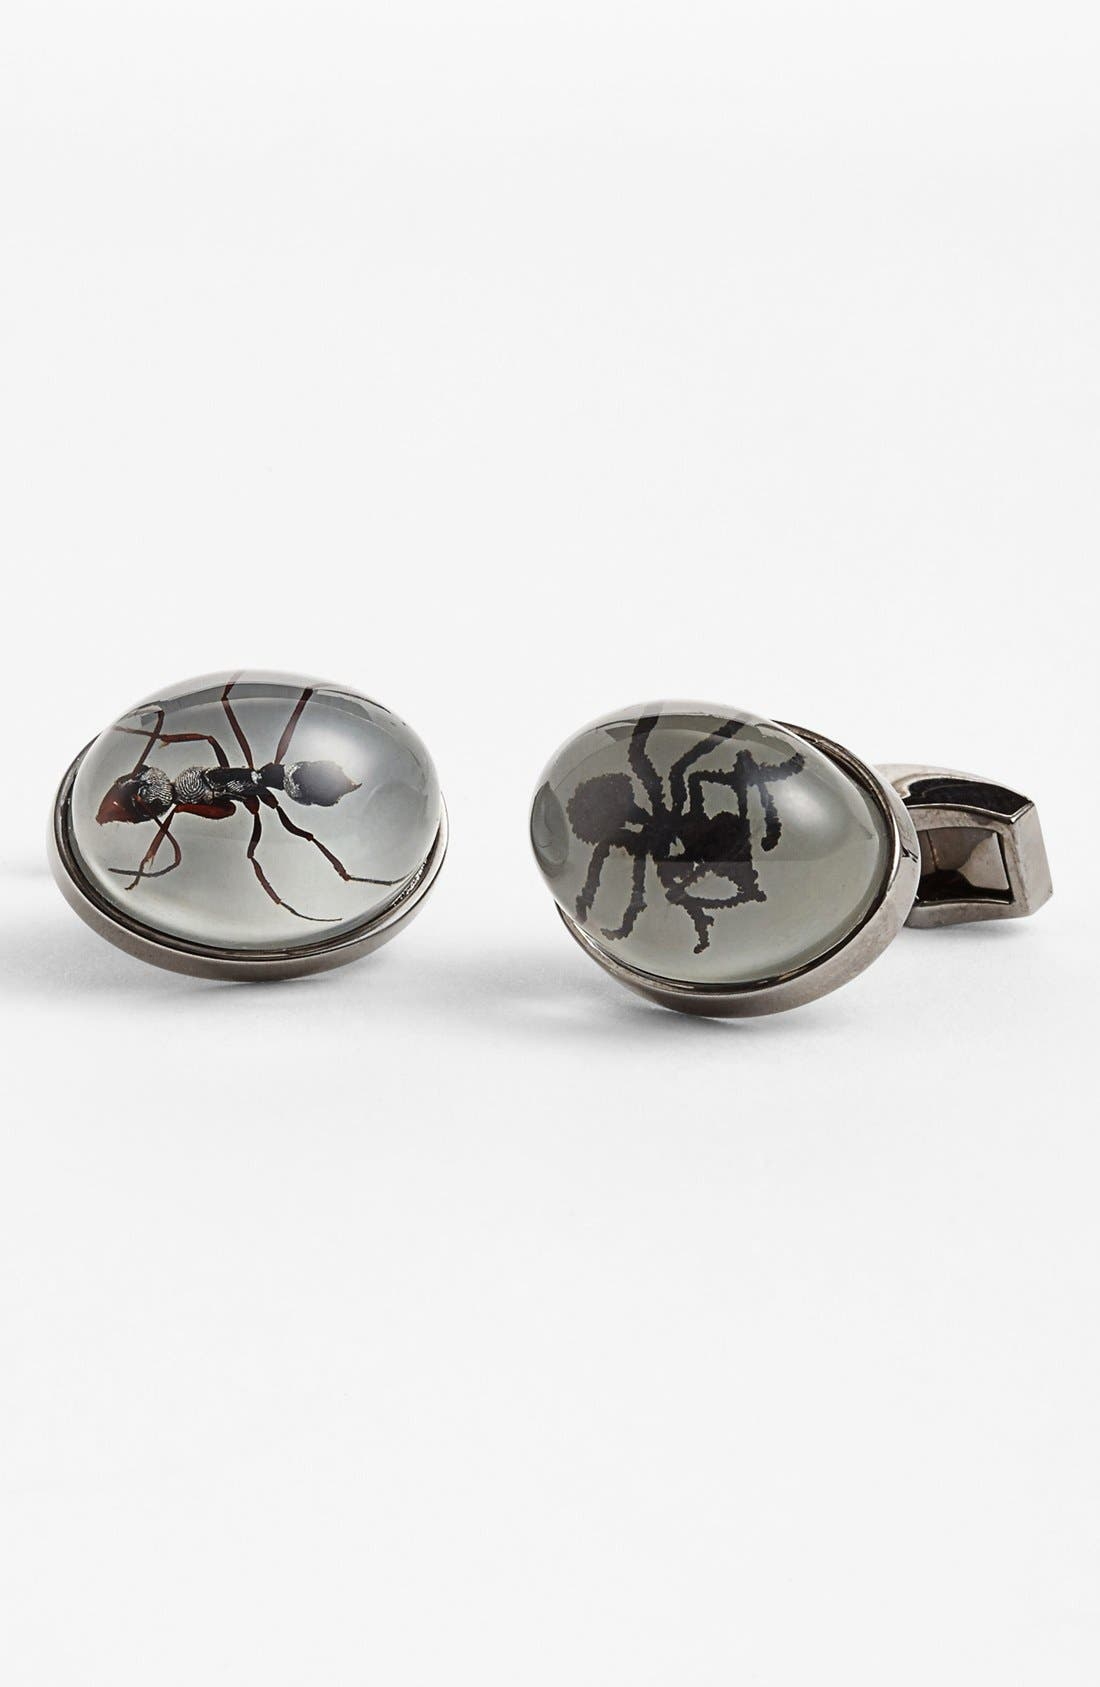 Alternate Image 1 Selected - Tateossian 'Deadly Creatures - Black Ant' Cuff Links